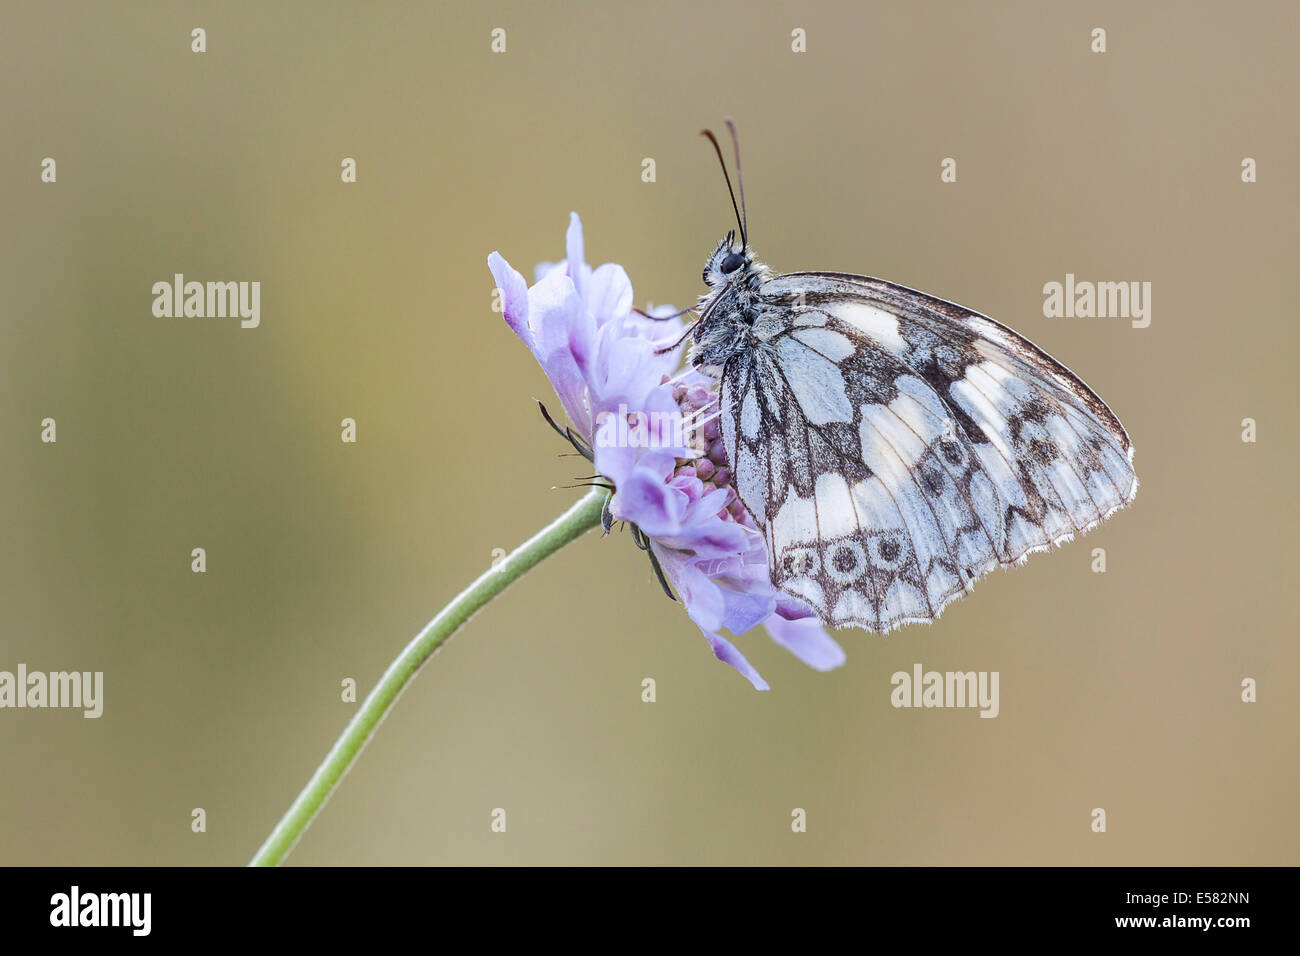 Marbled White (Melanargia galathea) on Meadow Widow Flower (Knautia arvensis), North Hesse, Hesse, Germany - Stock Image